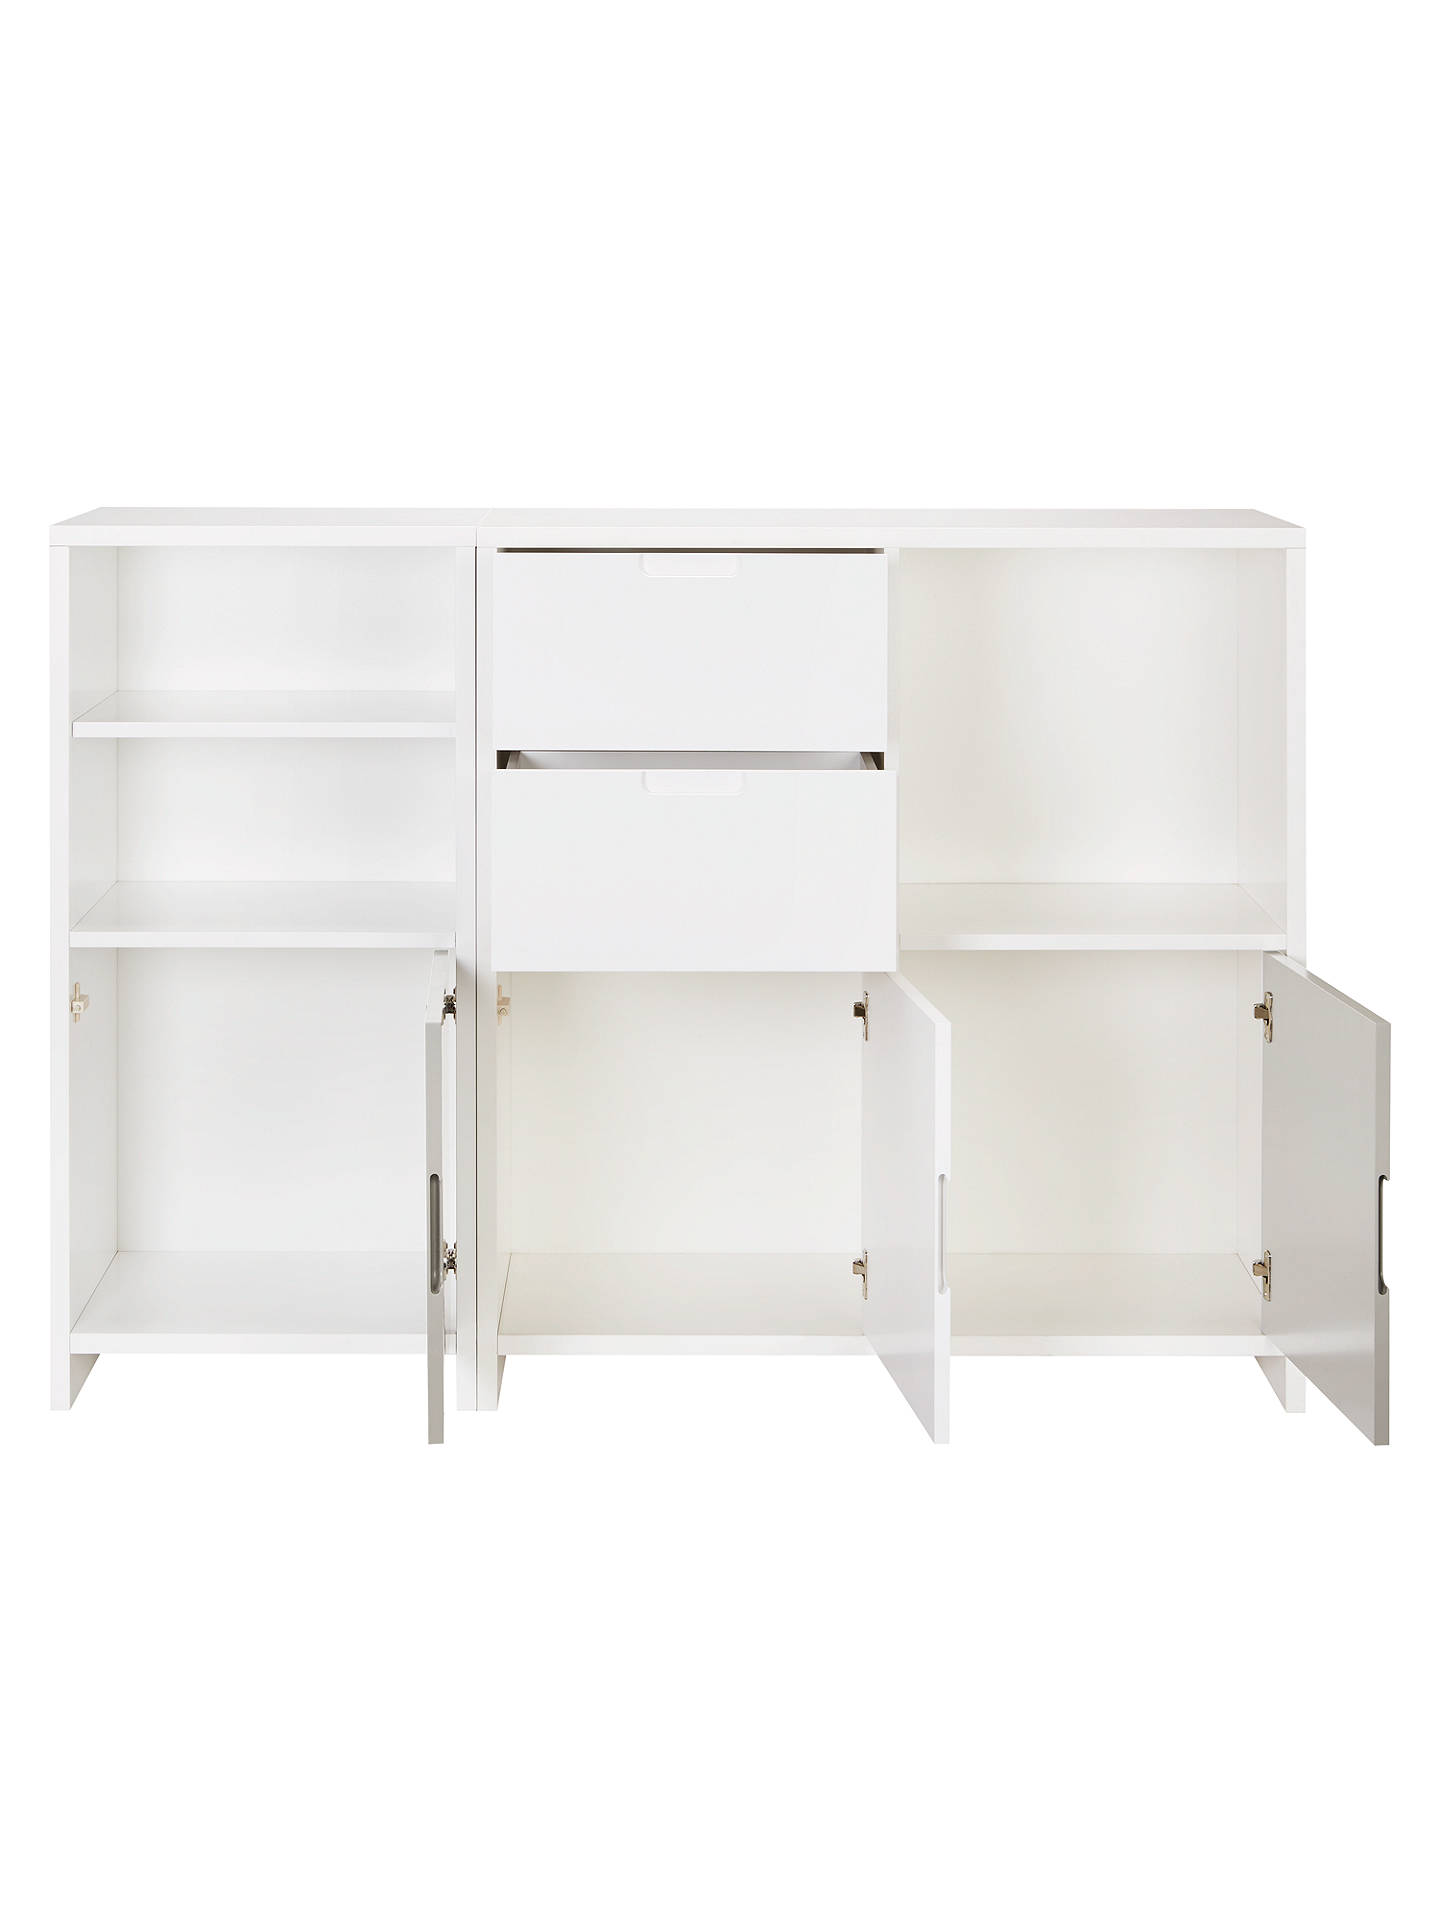 BuyHouse by John Lewis Oxford Shelving Cube Unit with 3 Doors and 2 Drawers, Smoke / White Online at johnlewis.com